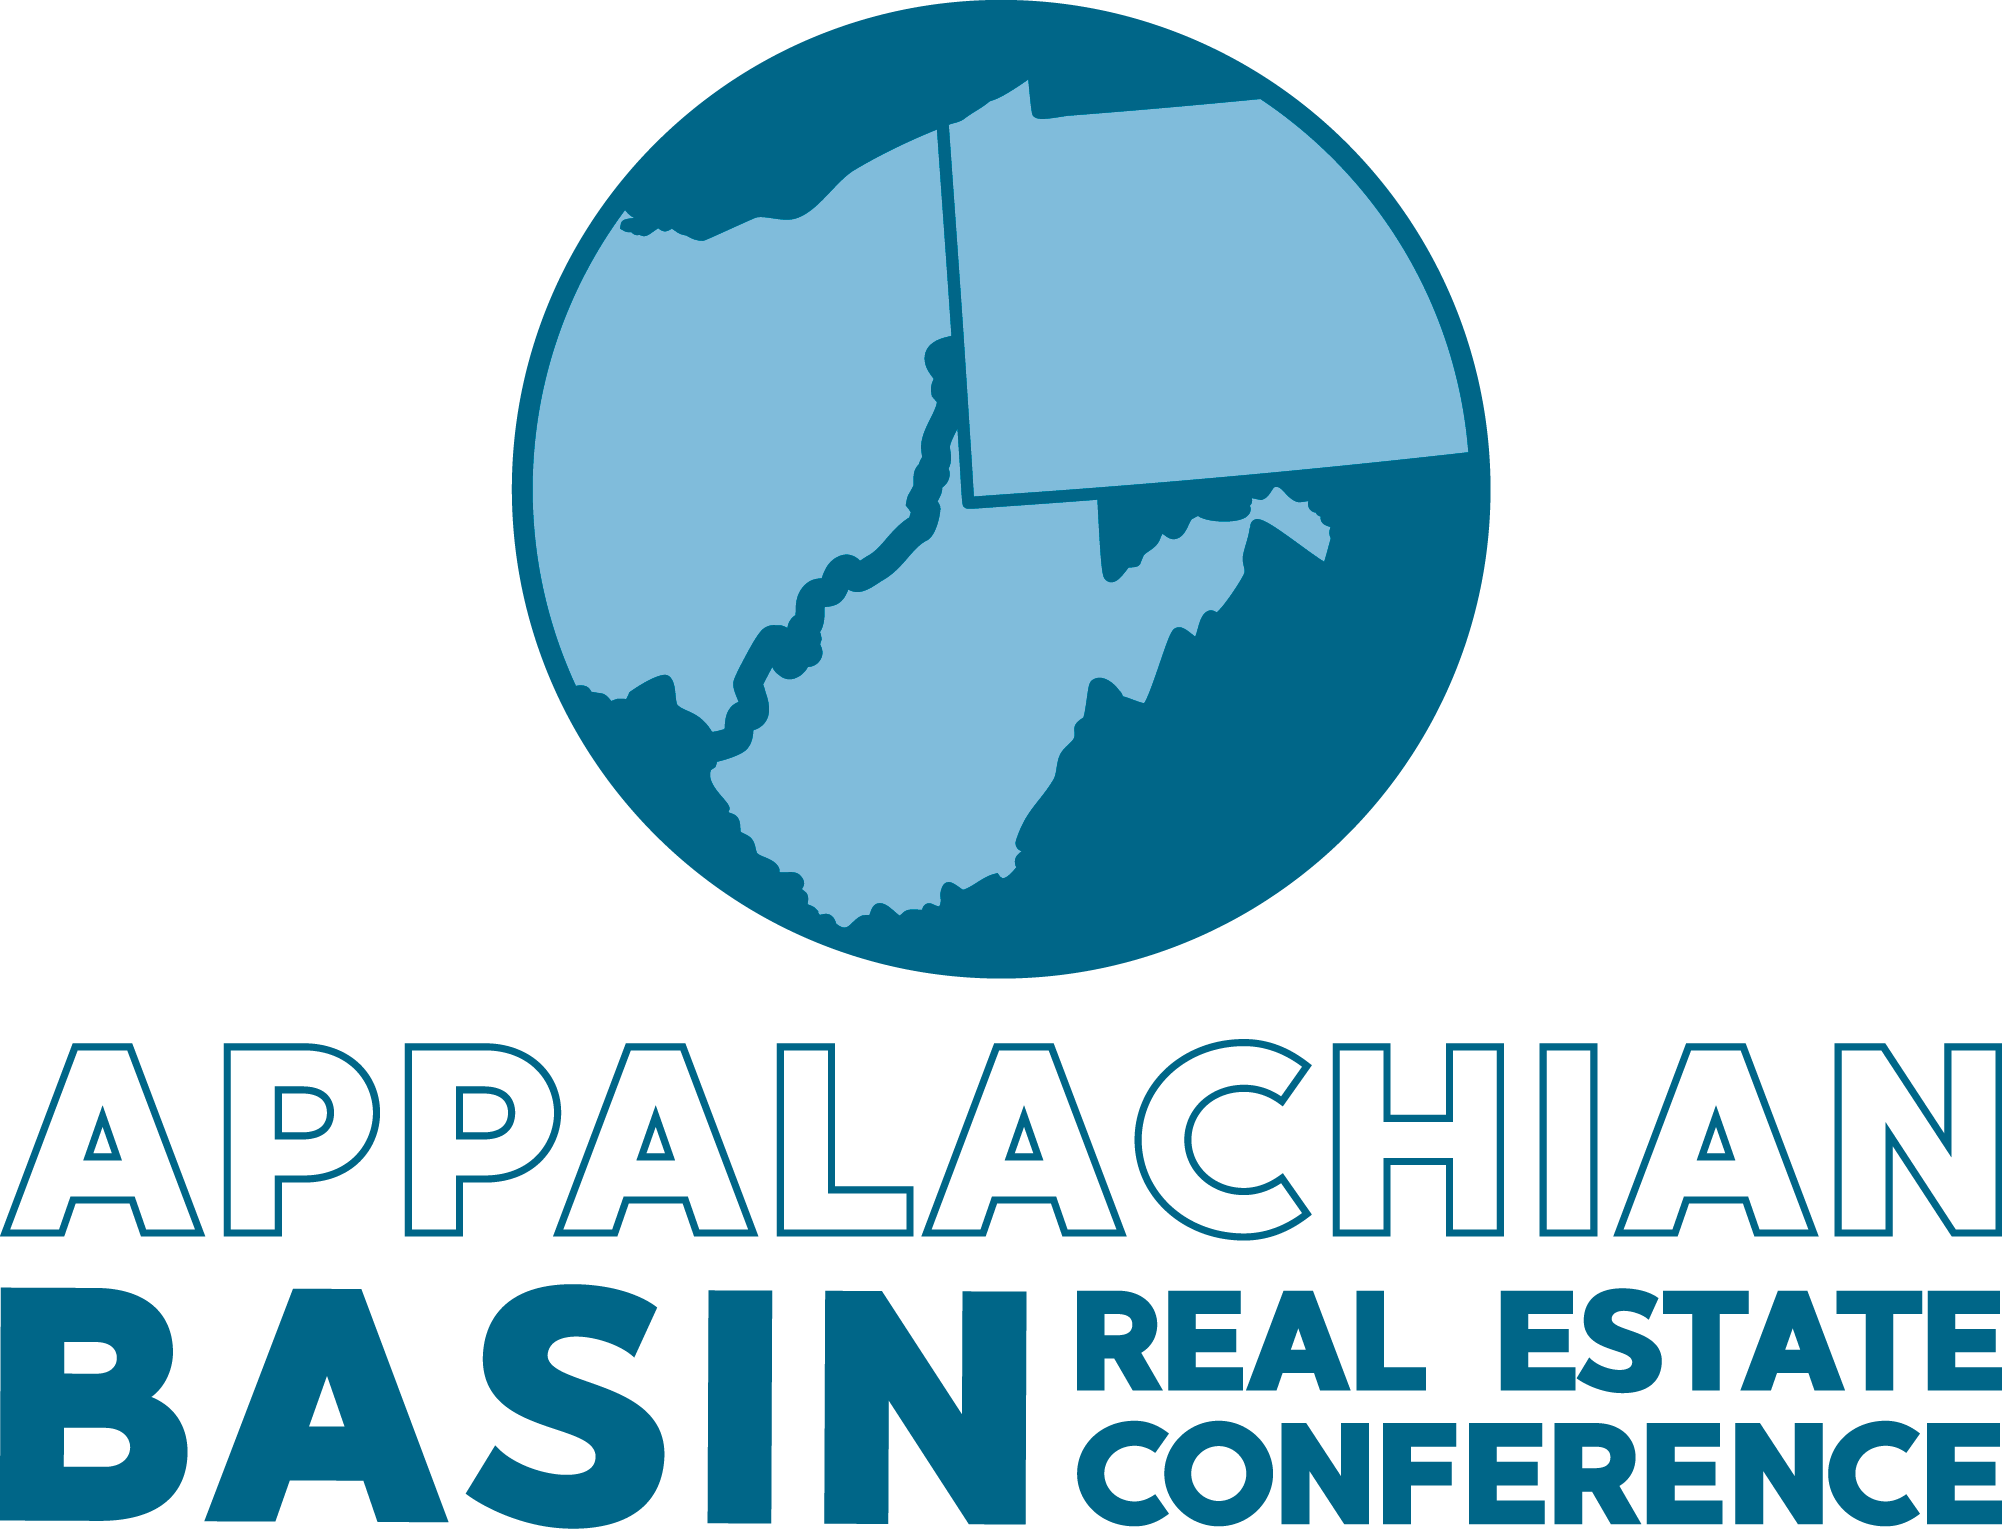 Appalachian Basin Real Estate Conference